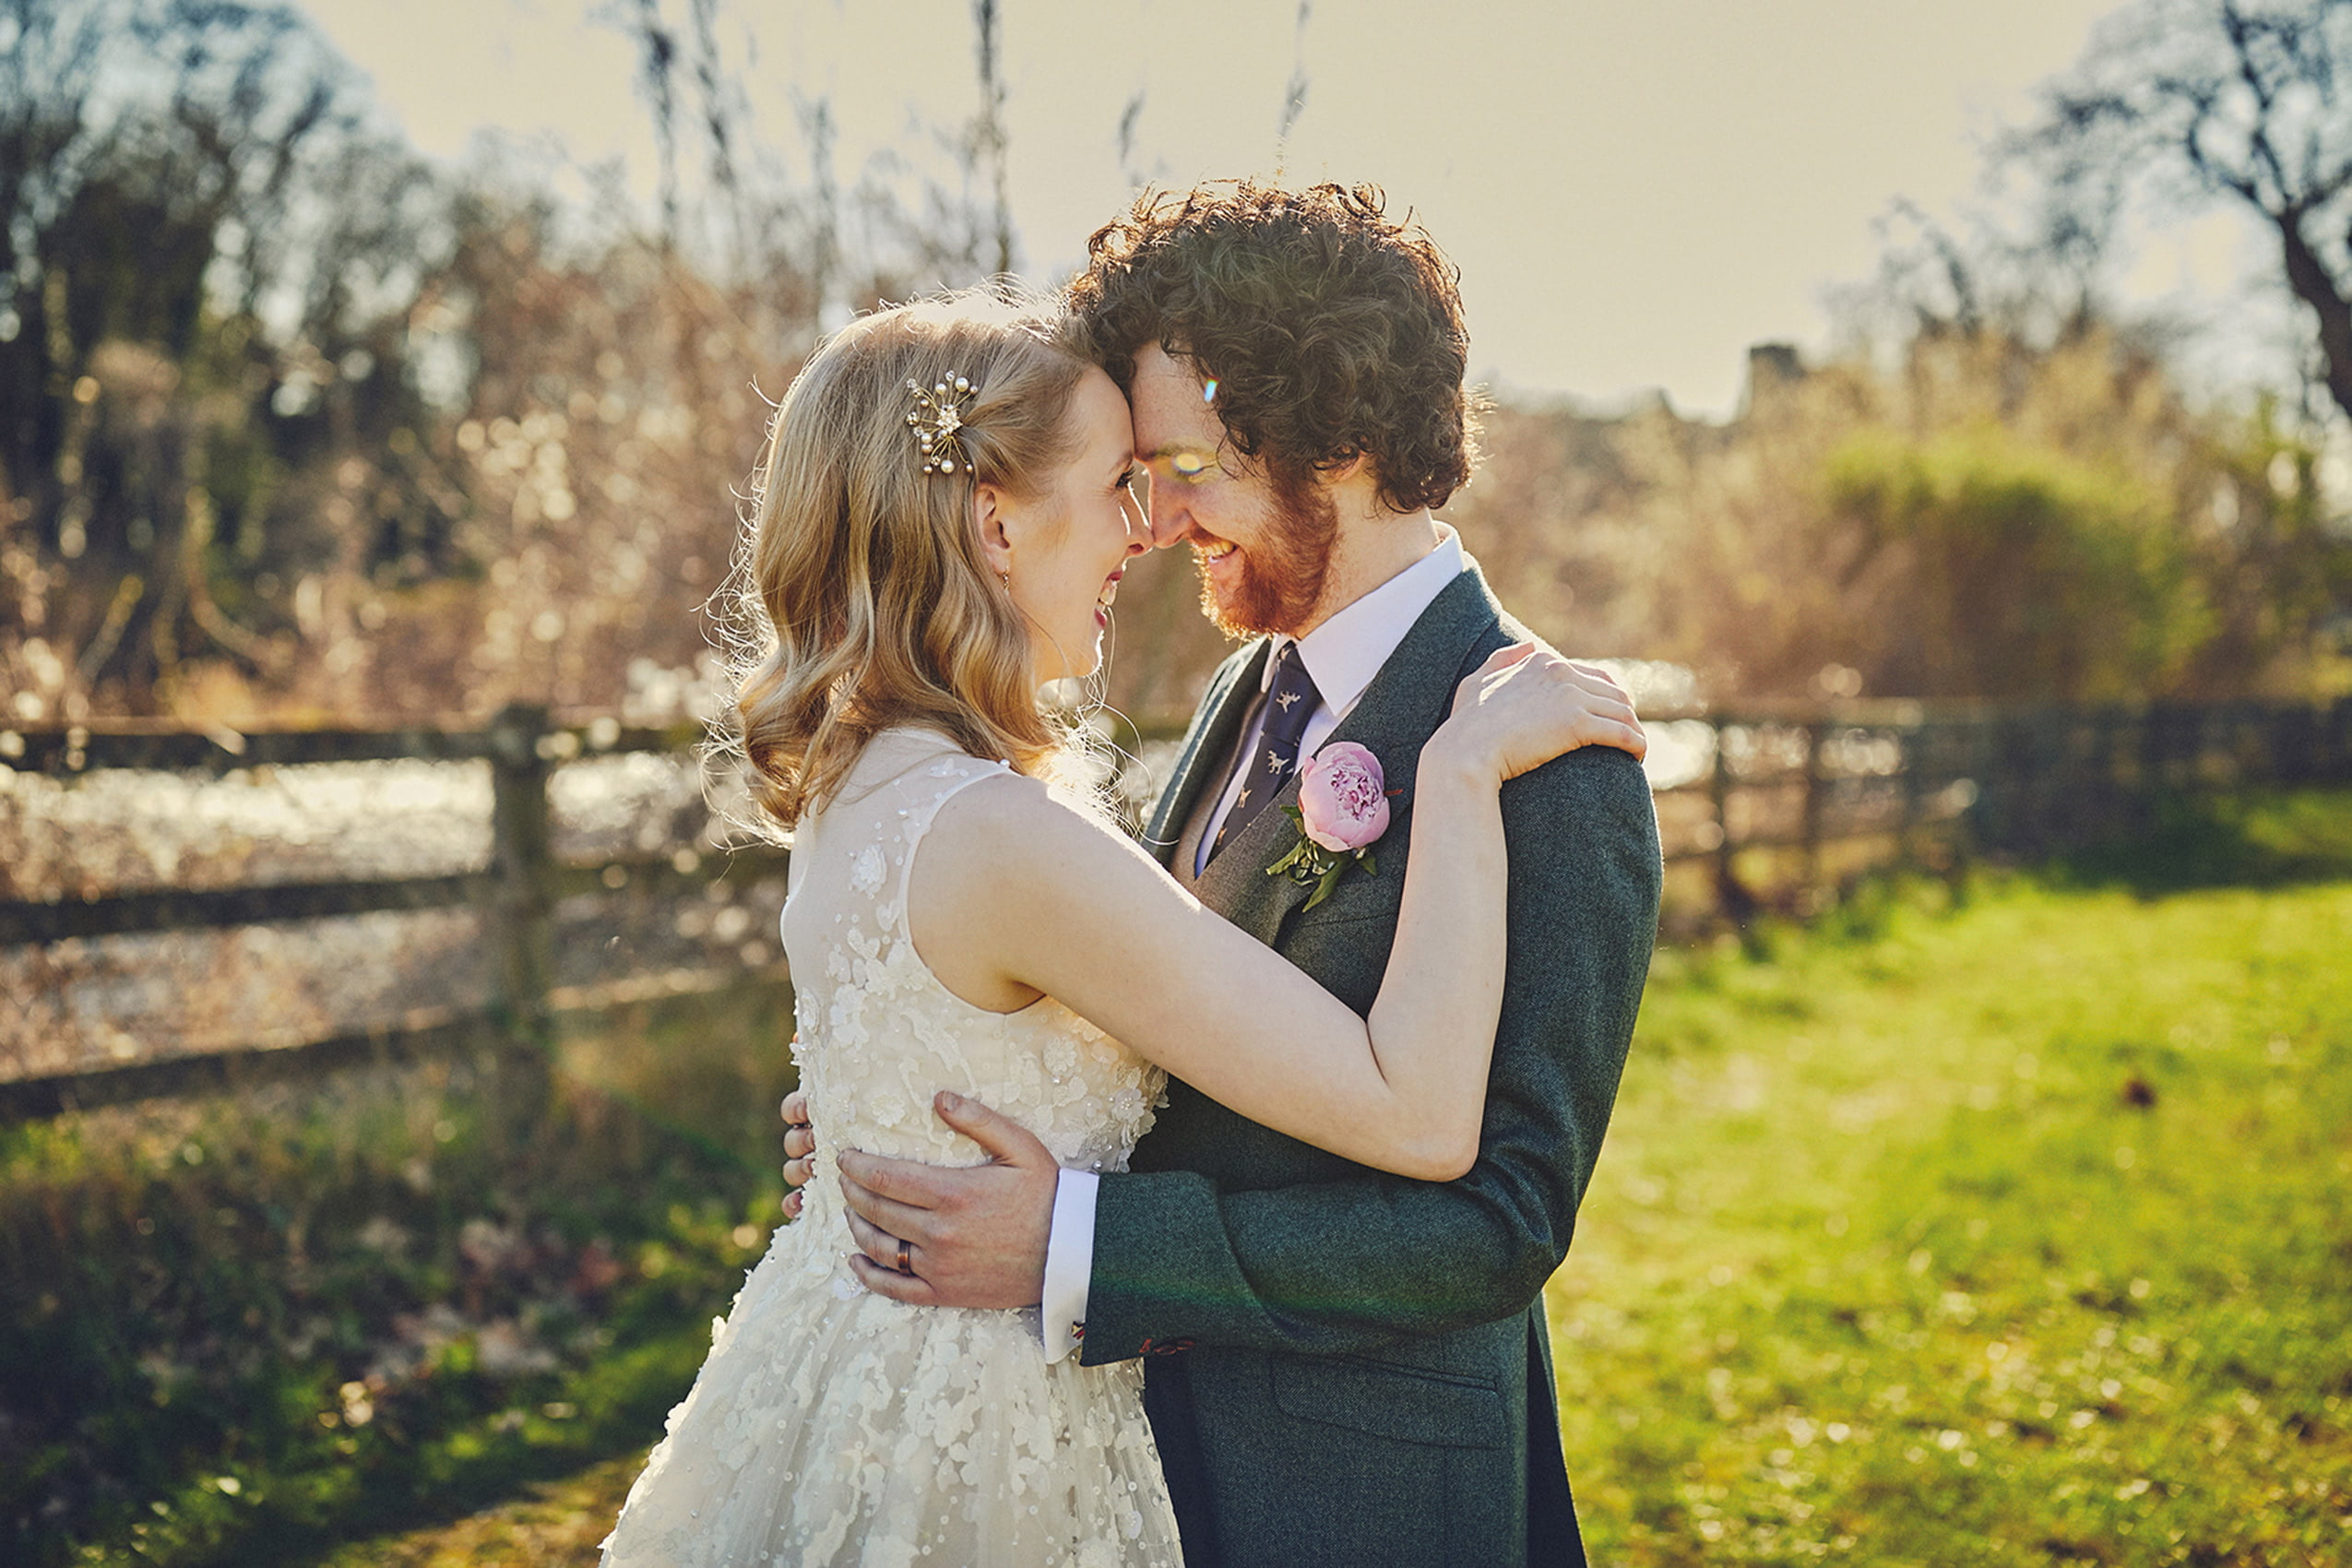 18 Tips on how to Budget and save Money on your Dream Wedding